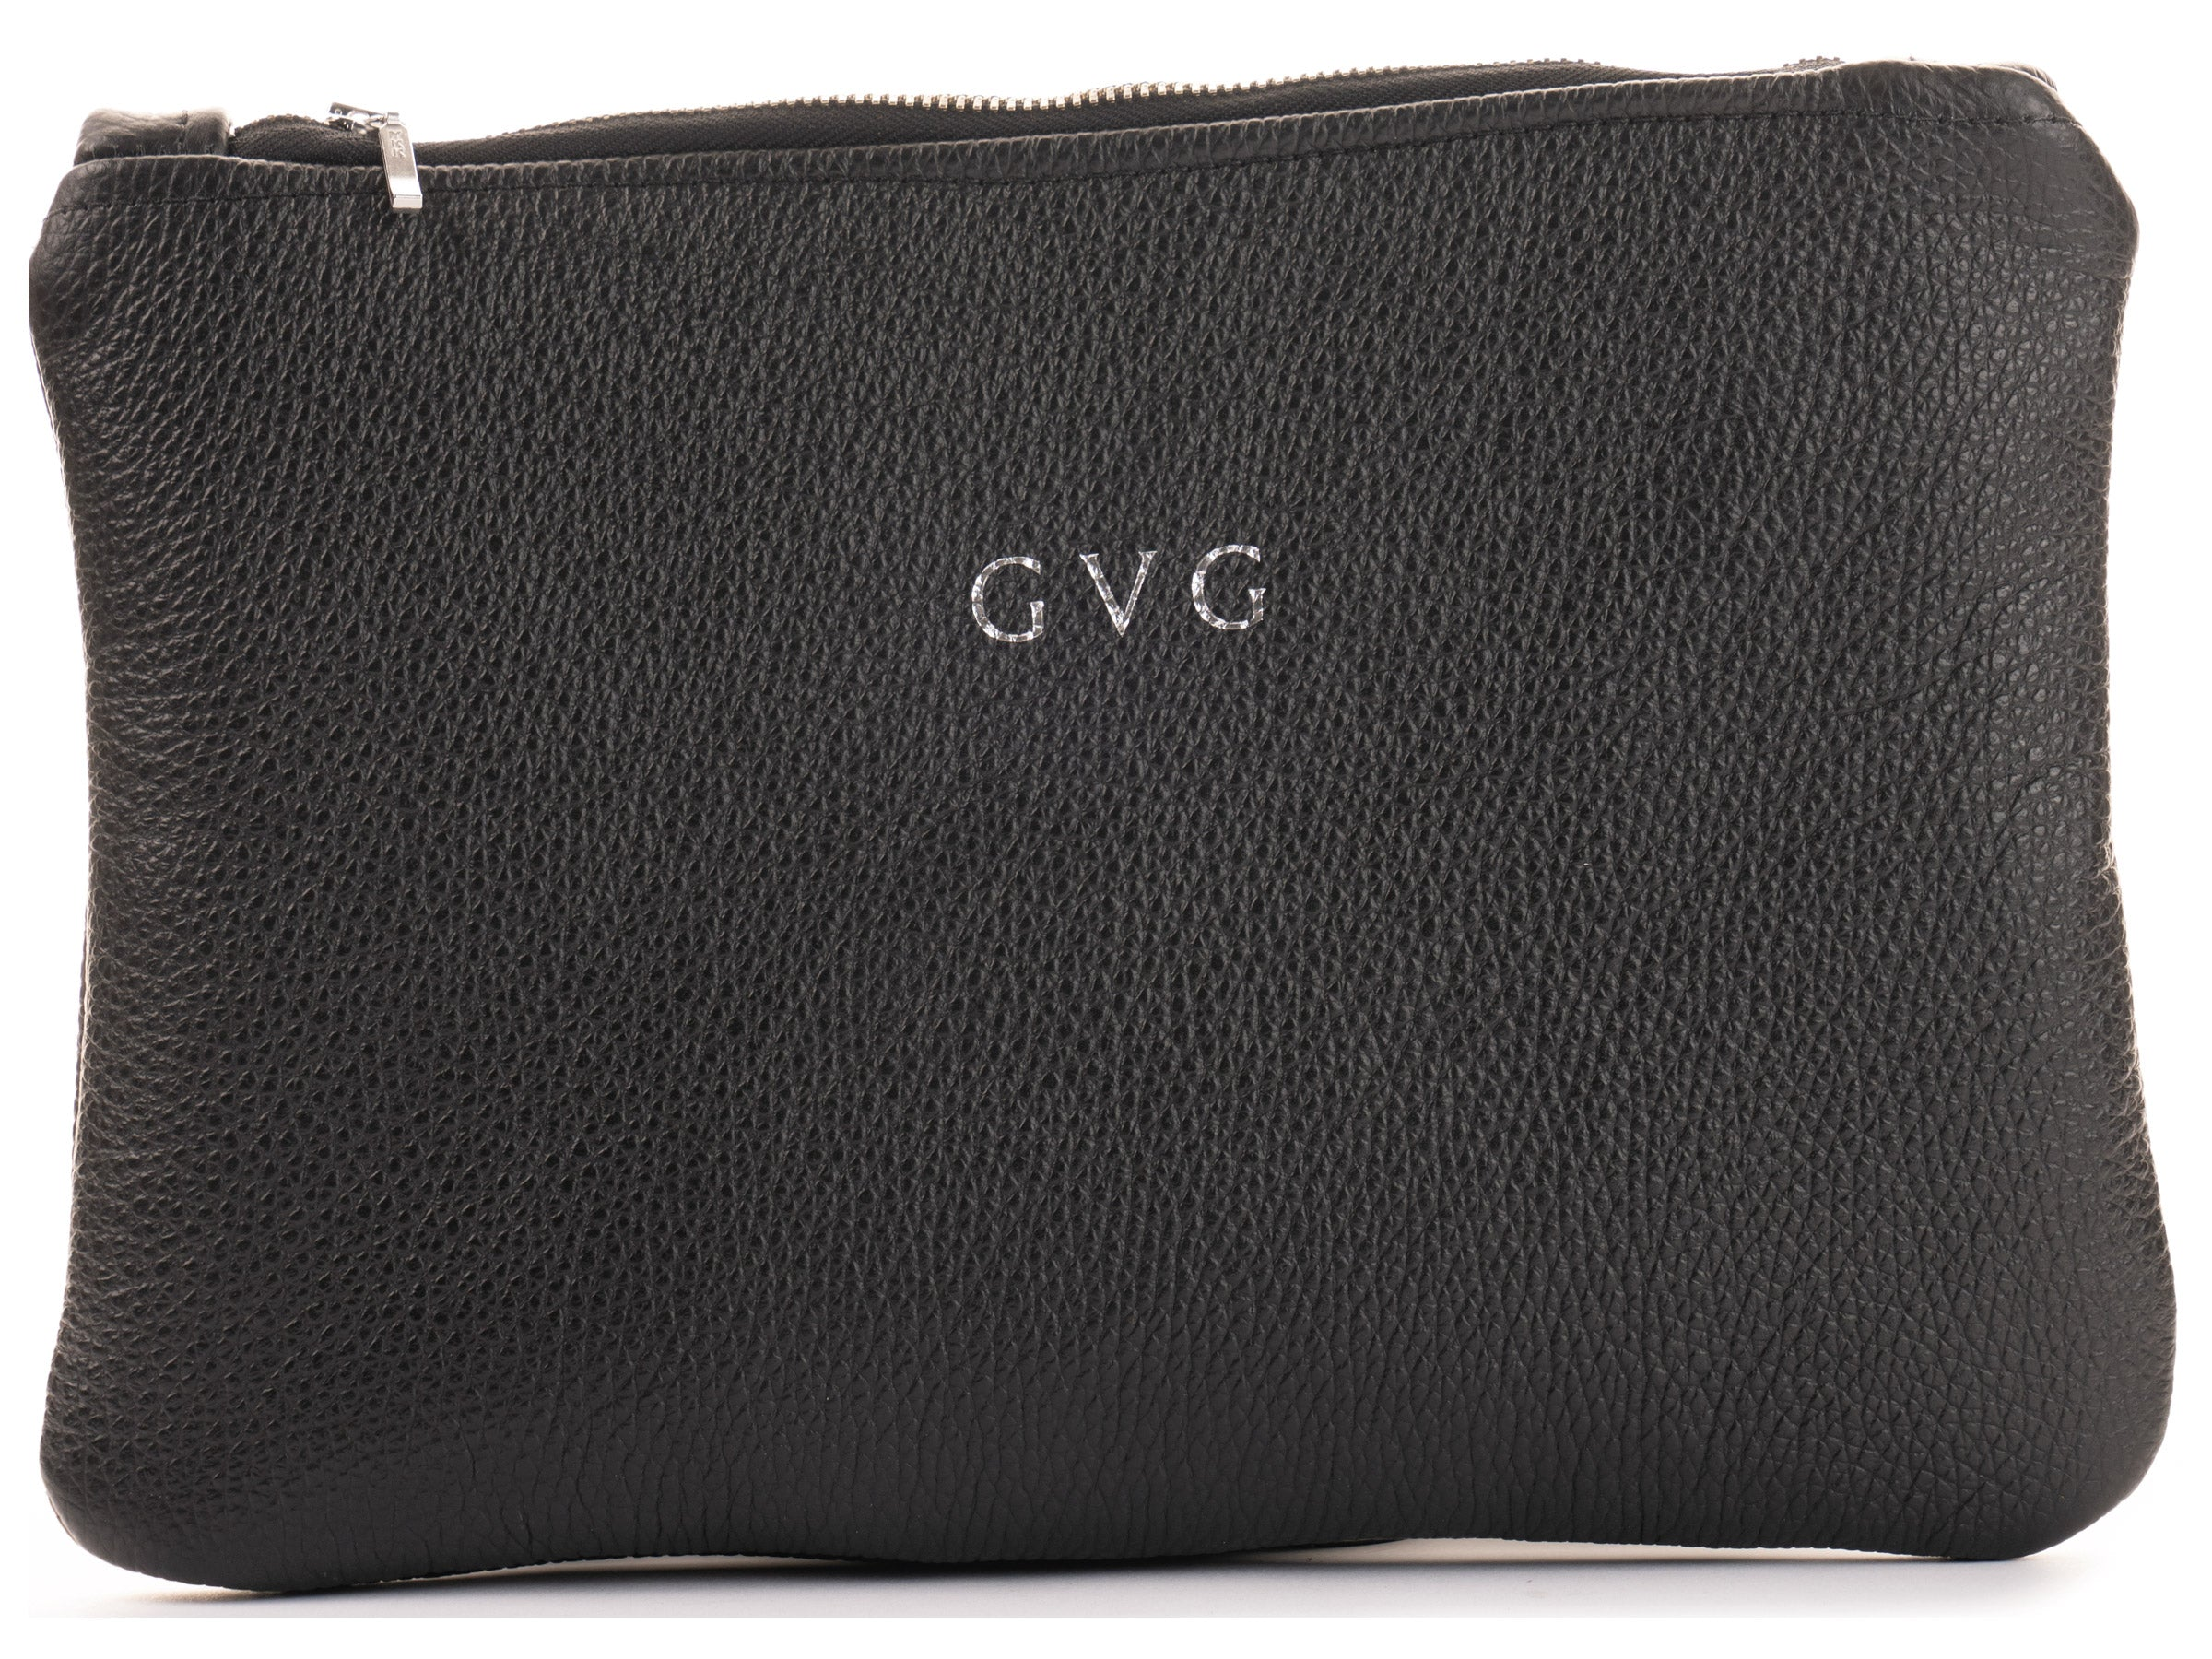 Grace Clutch Bag - Black/ Bright Blue